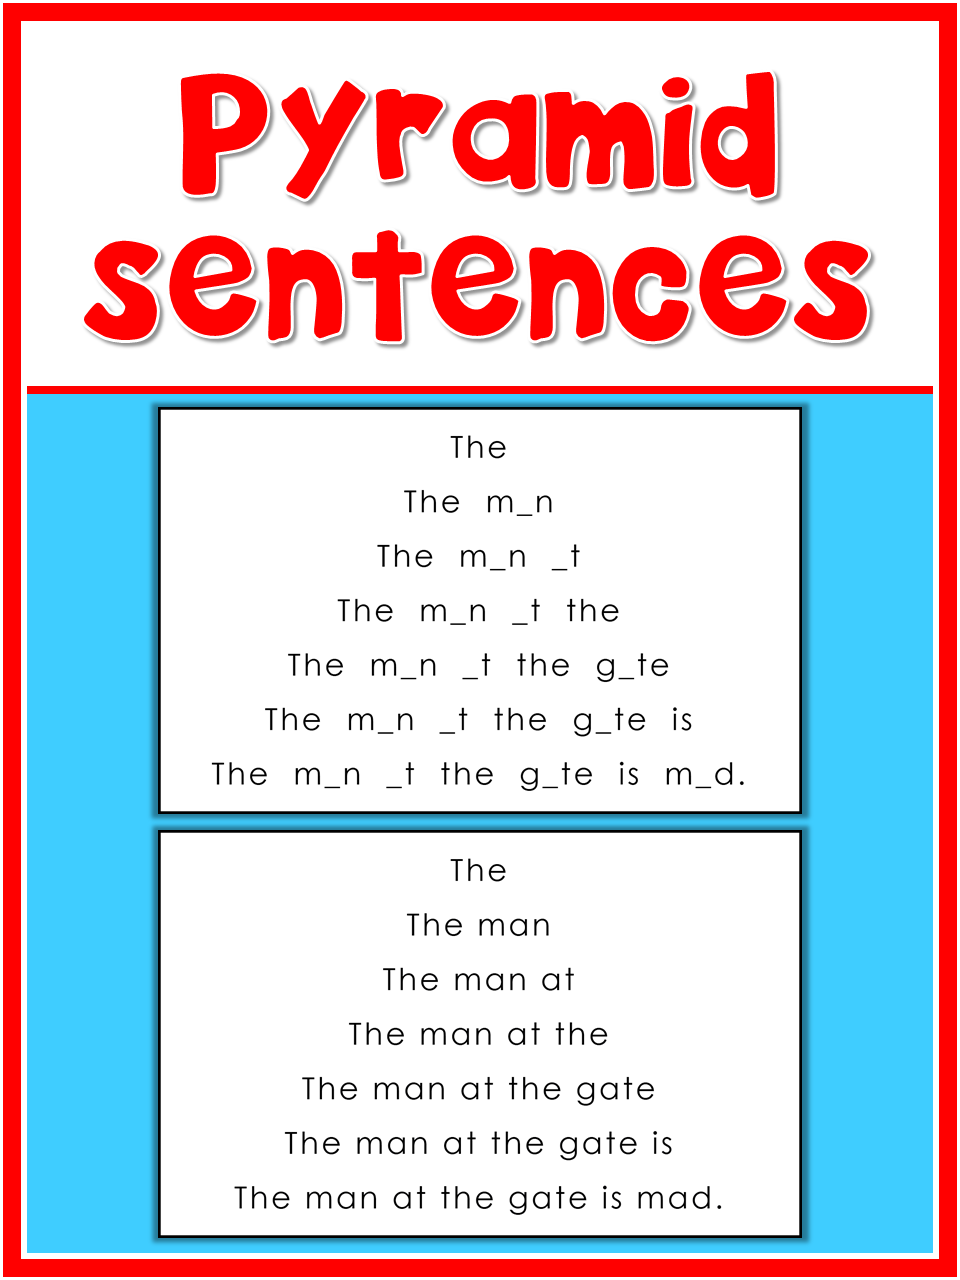 Letter A Pyramid Sentences This Set Is Great For Beginning Readers To Practice Reading Sentences With The Letter Aa Reading Tutoring Sentences Writing Photos [ 1280 x 960 Pixel ]